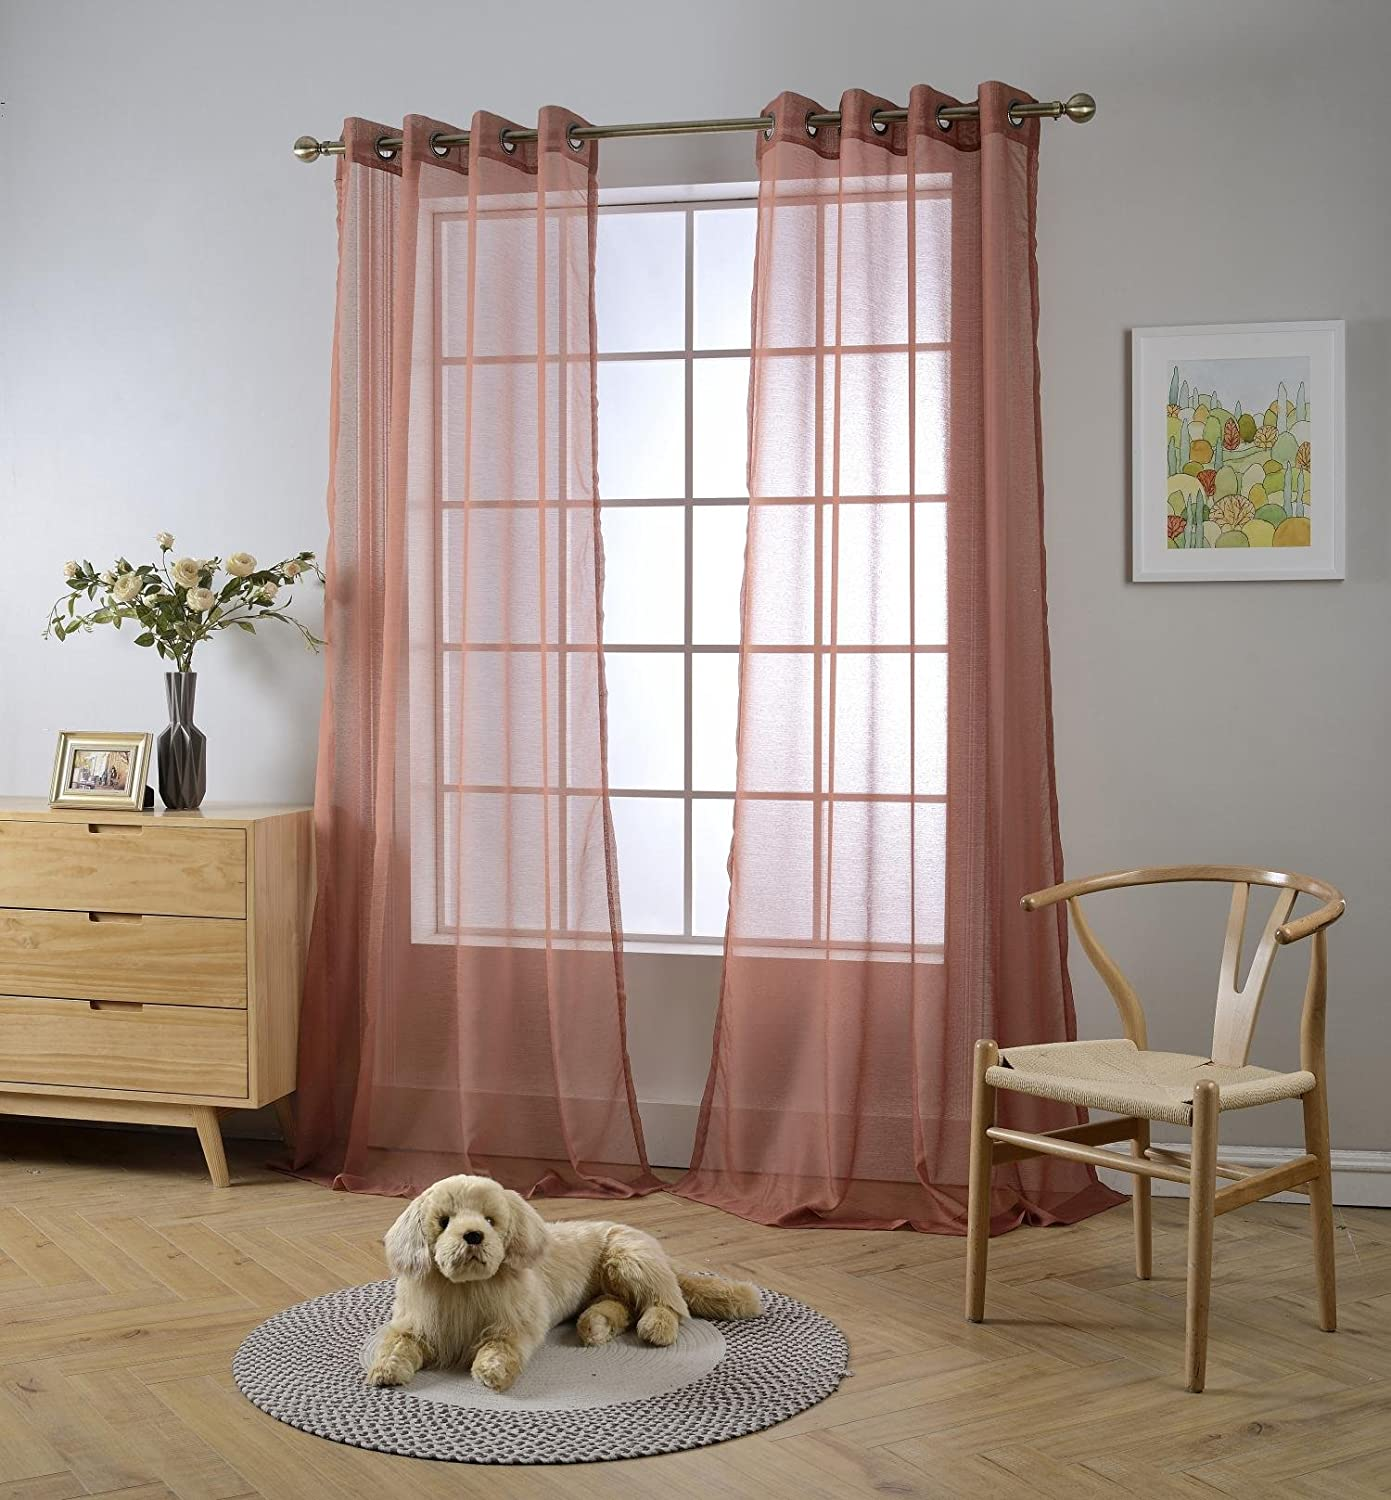 "Miuco 2 Panels Grommet Textured Solid Sheer Curtains 84 Inches Long for Living Room (2 x 54 Wide x 84"" Long) Rust"